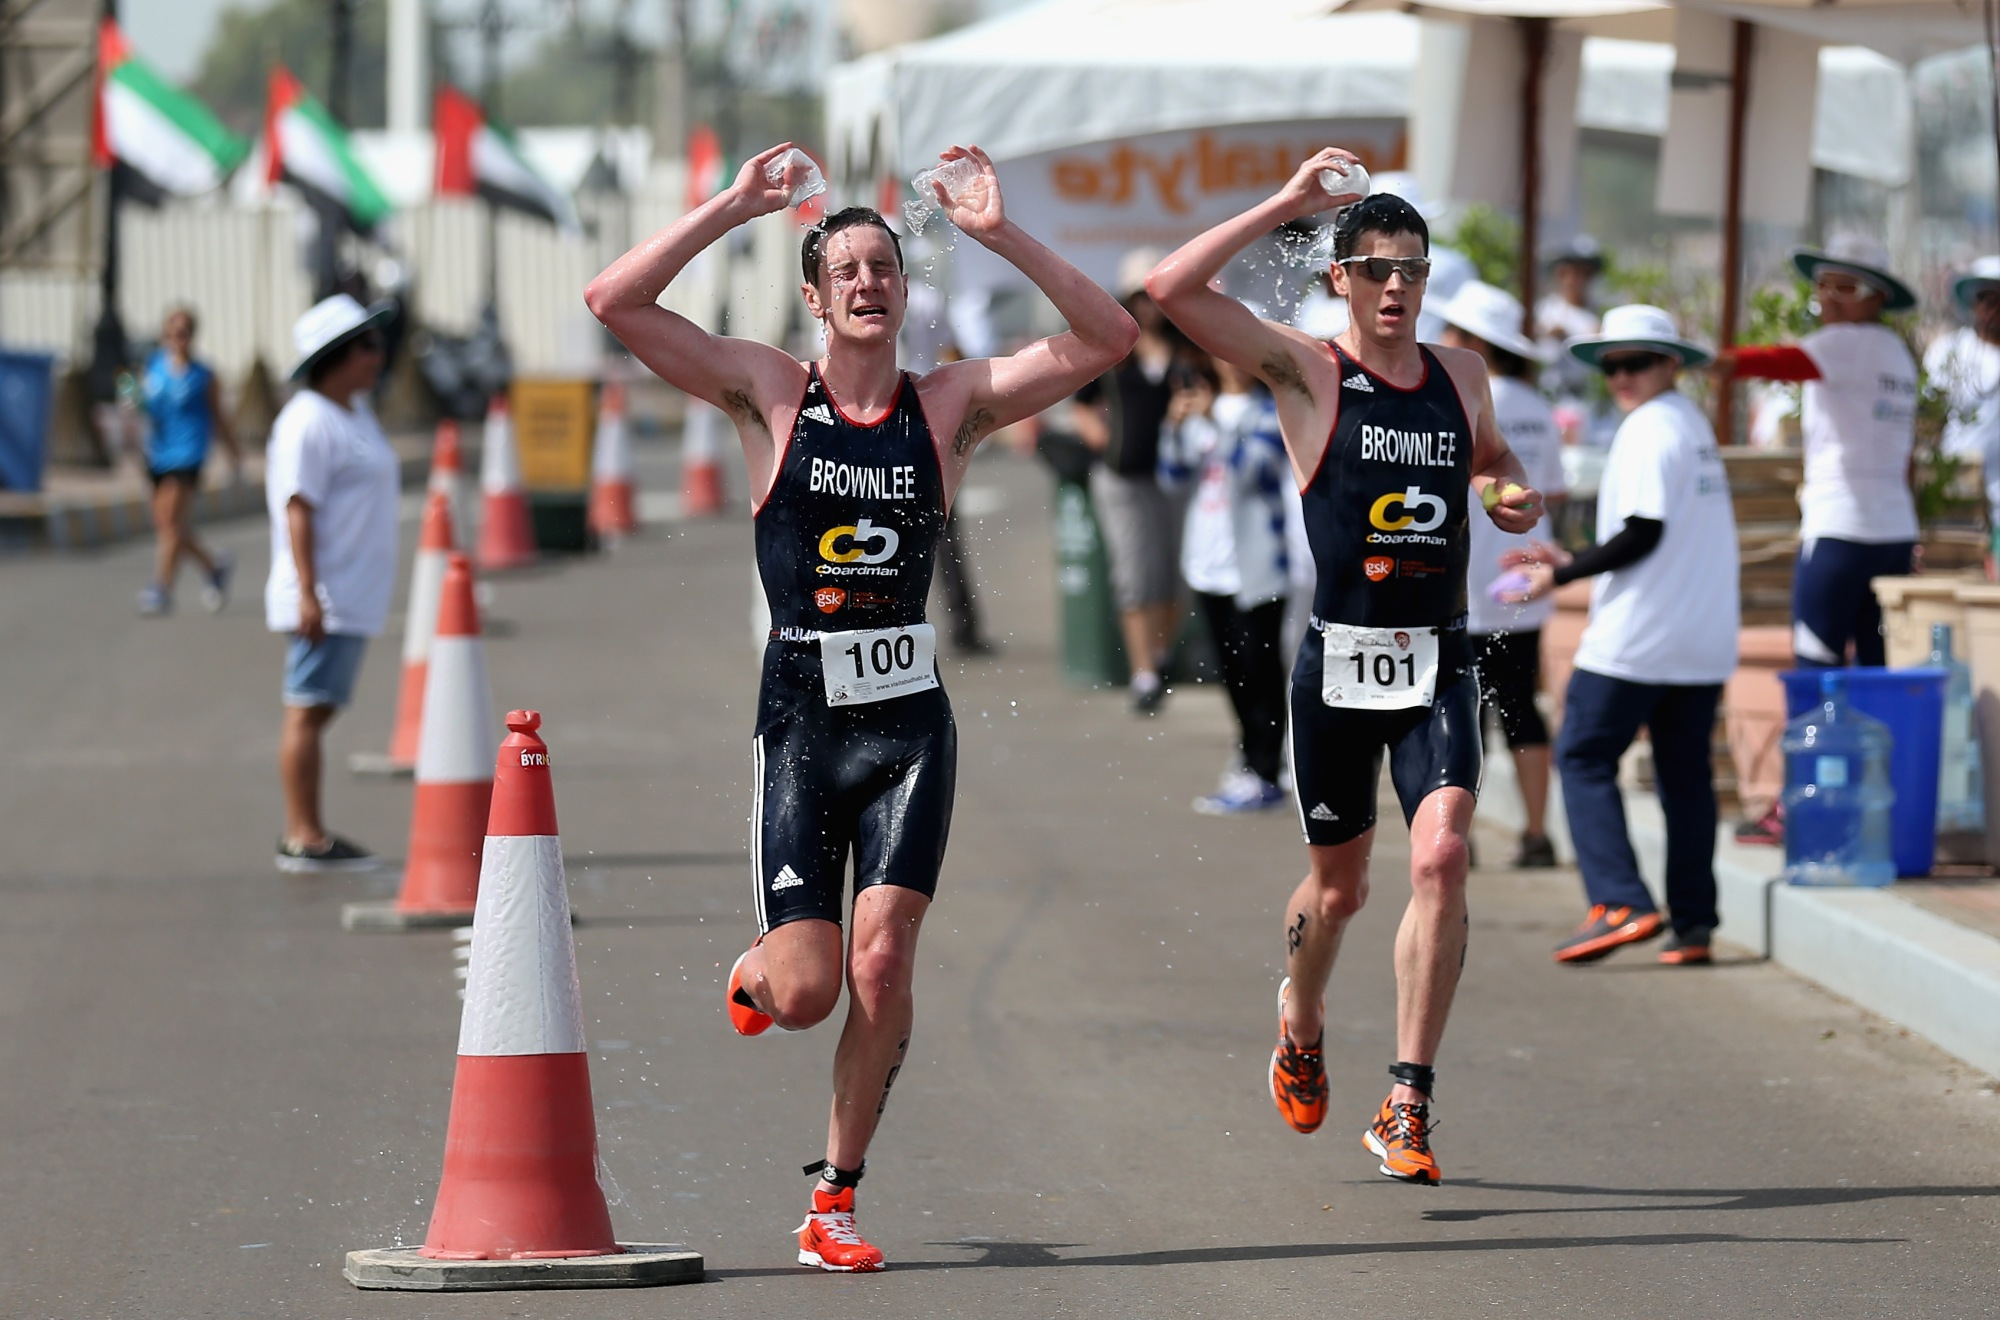 Abu Dhabi Triathlon brownlees 2014, abu dhabi triathlon review